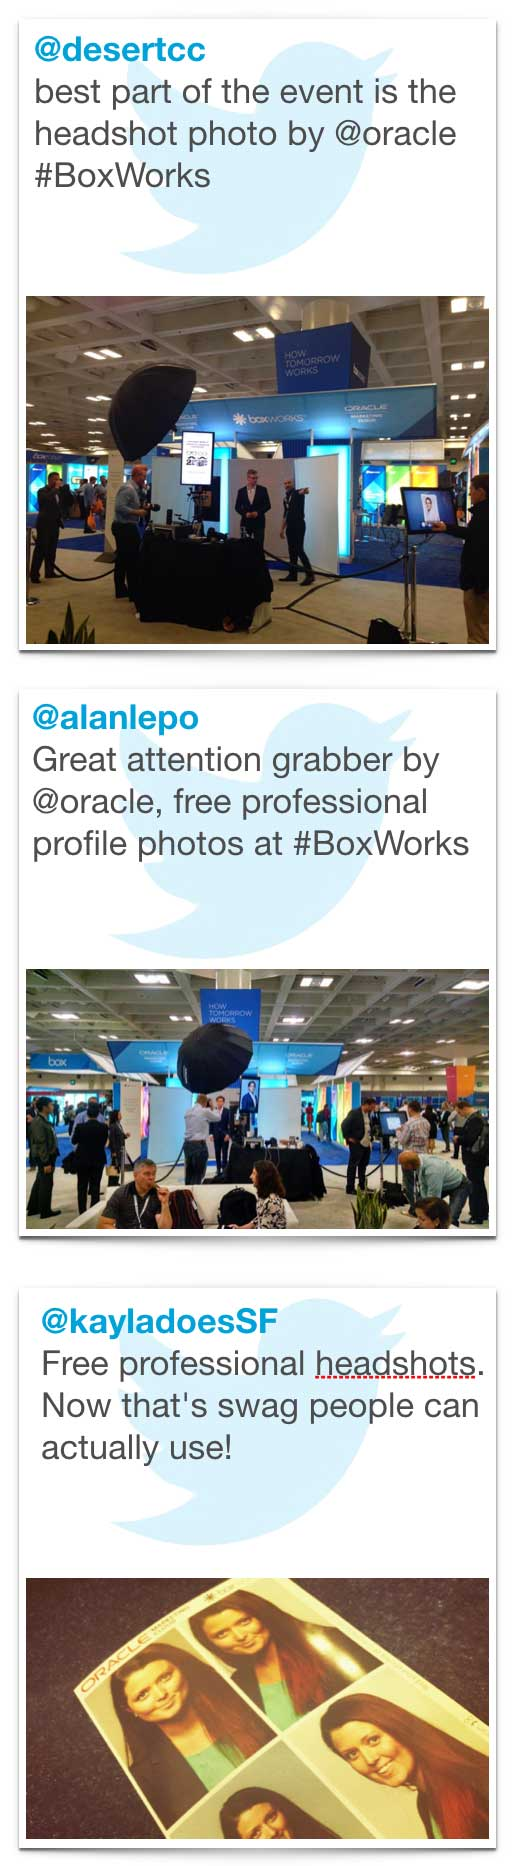 branded social media campaigns can have a meaningful impact on head shot booth efficacy at conventions and tradeshows